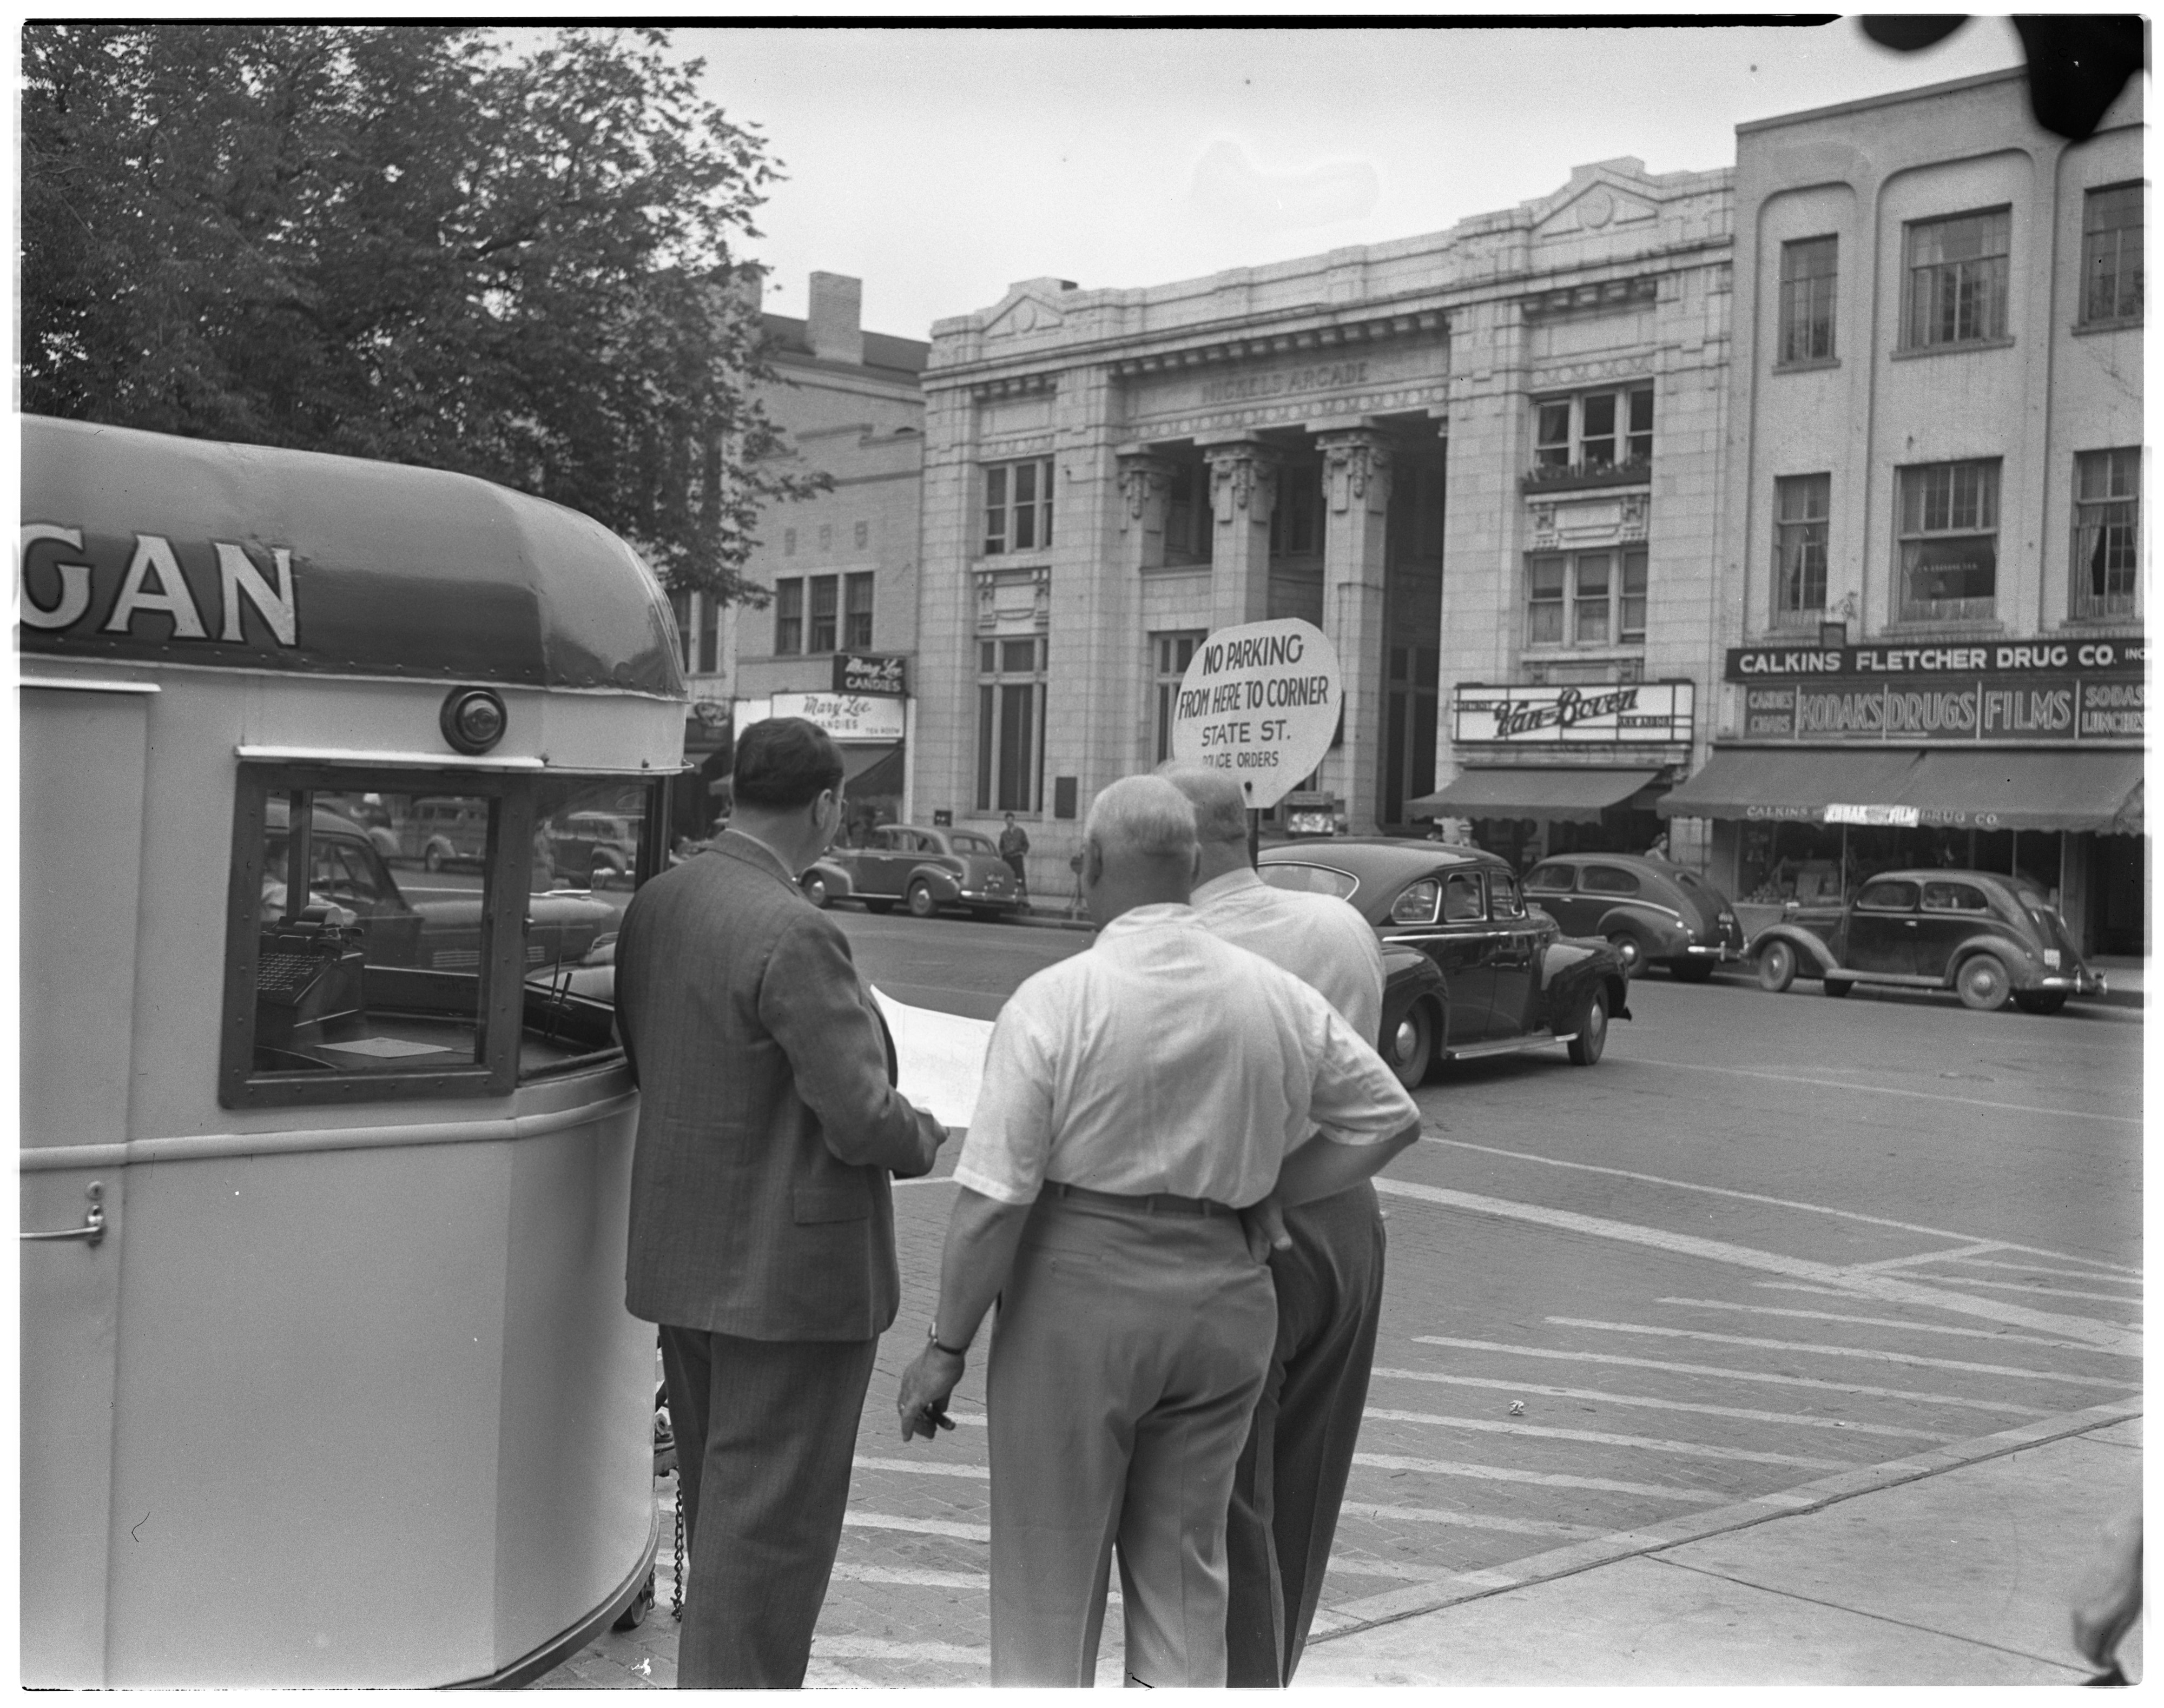 Ann Arbor Traffic Control Survey, 1939 image